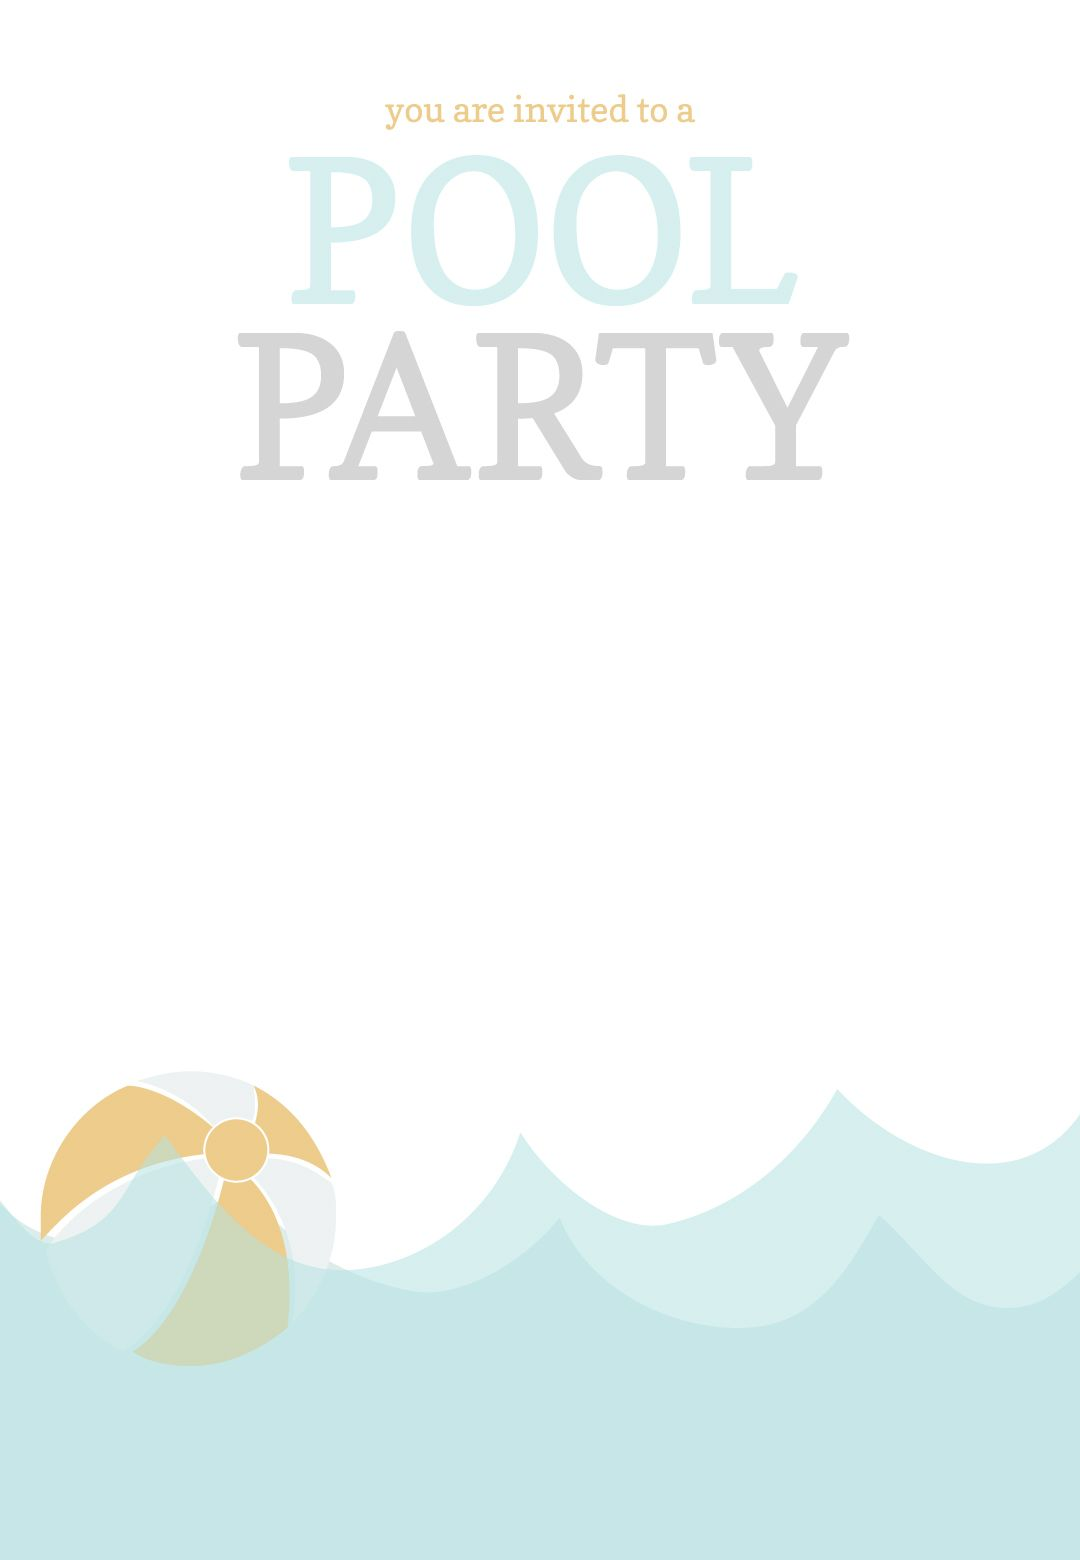 pool party invitation printables summer party summer pool party invitation printables summer party